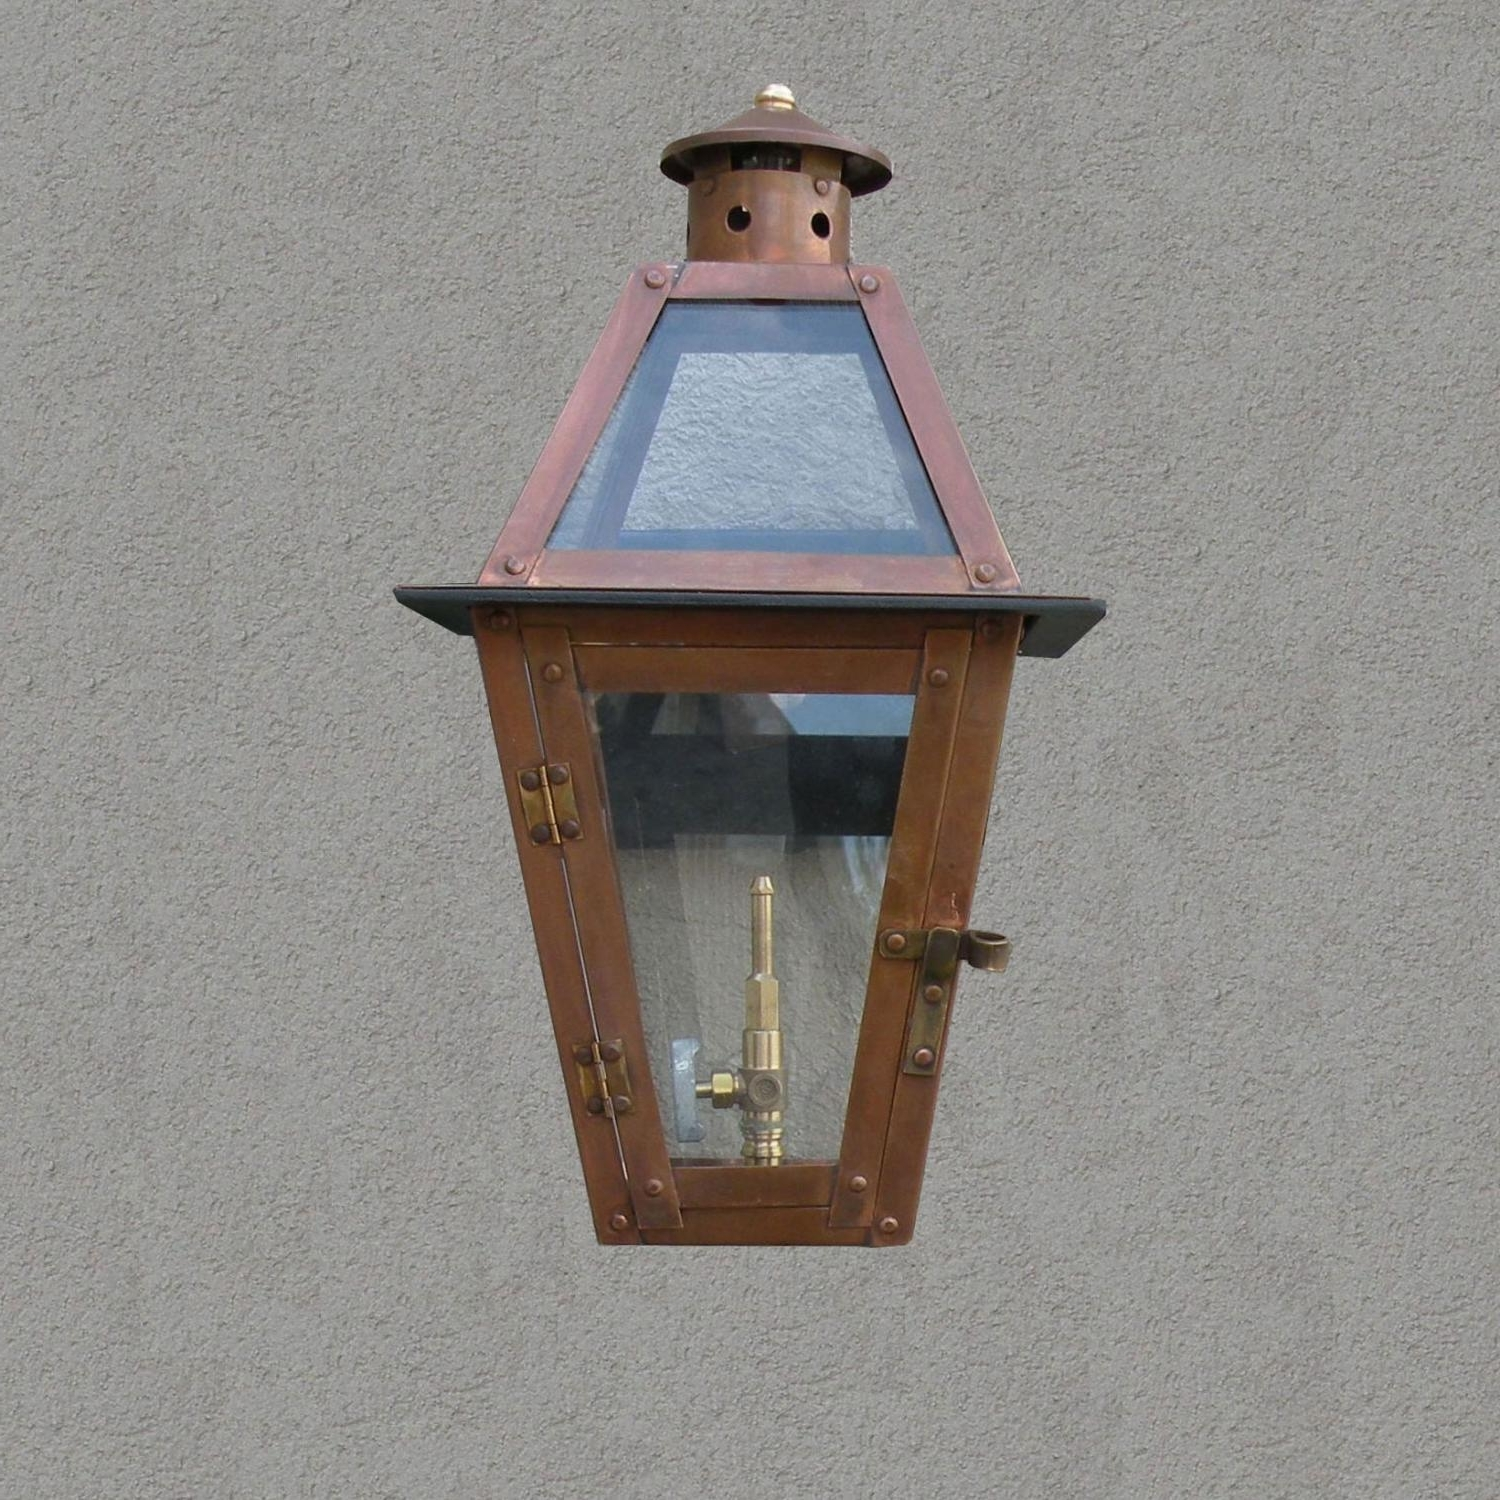 Preferred Regency Gl15 Chateau Natural Gas Light With Open Flame Burner And In Outdoor Patio Electric Lanterns (View 10 of 20)